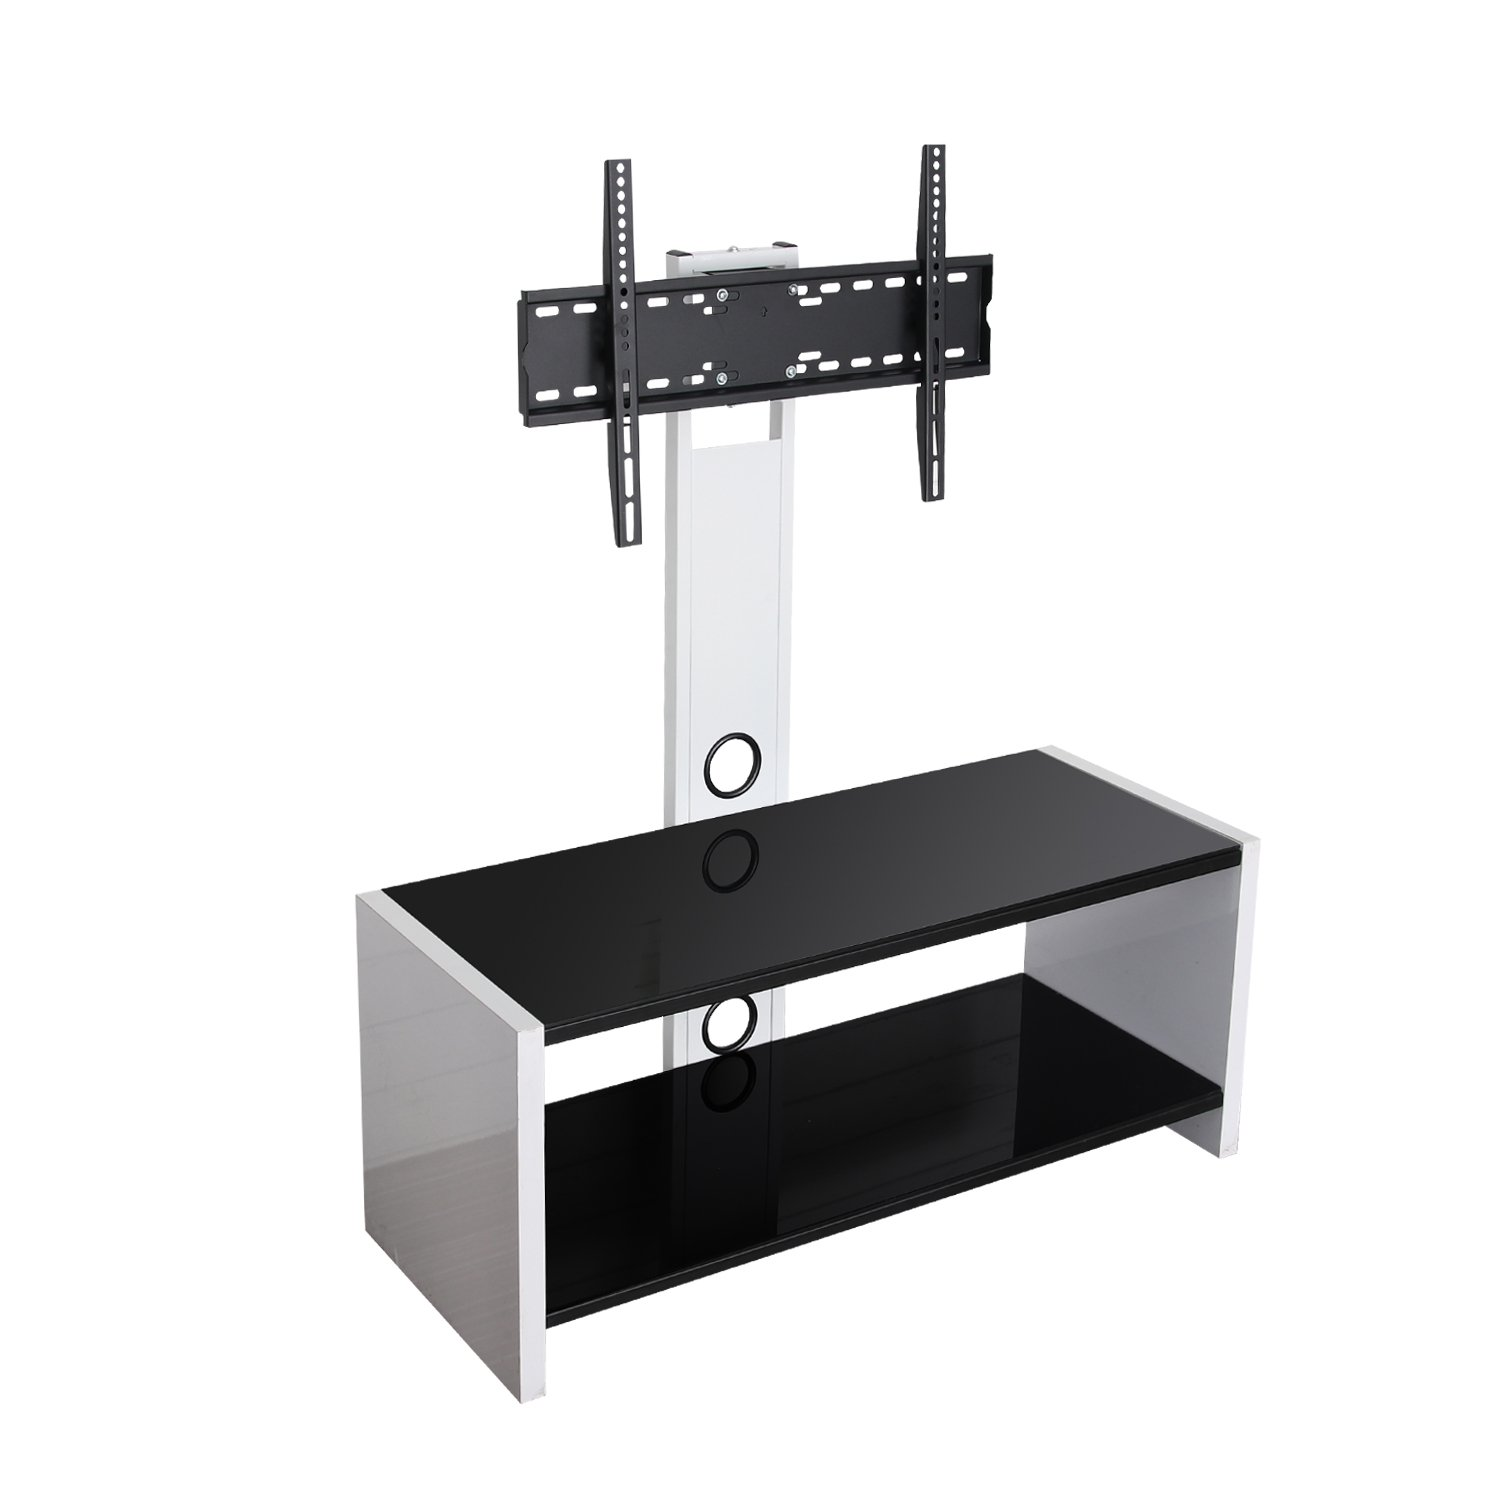 Cheap Swivel Mount Tv Stand Find Swivel Mount Tv Stand Deals On